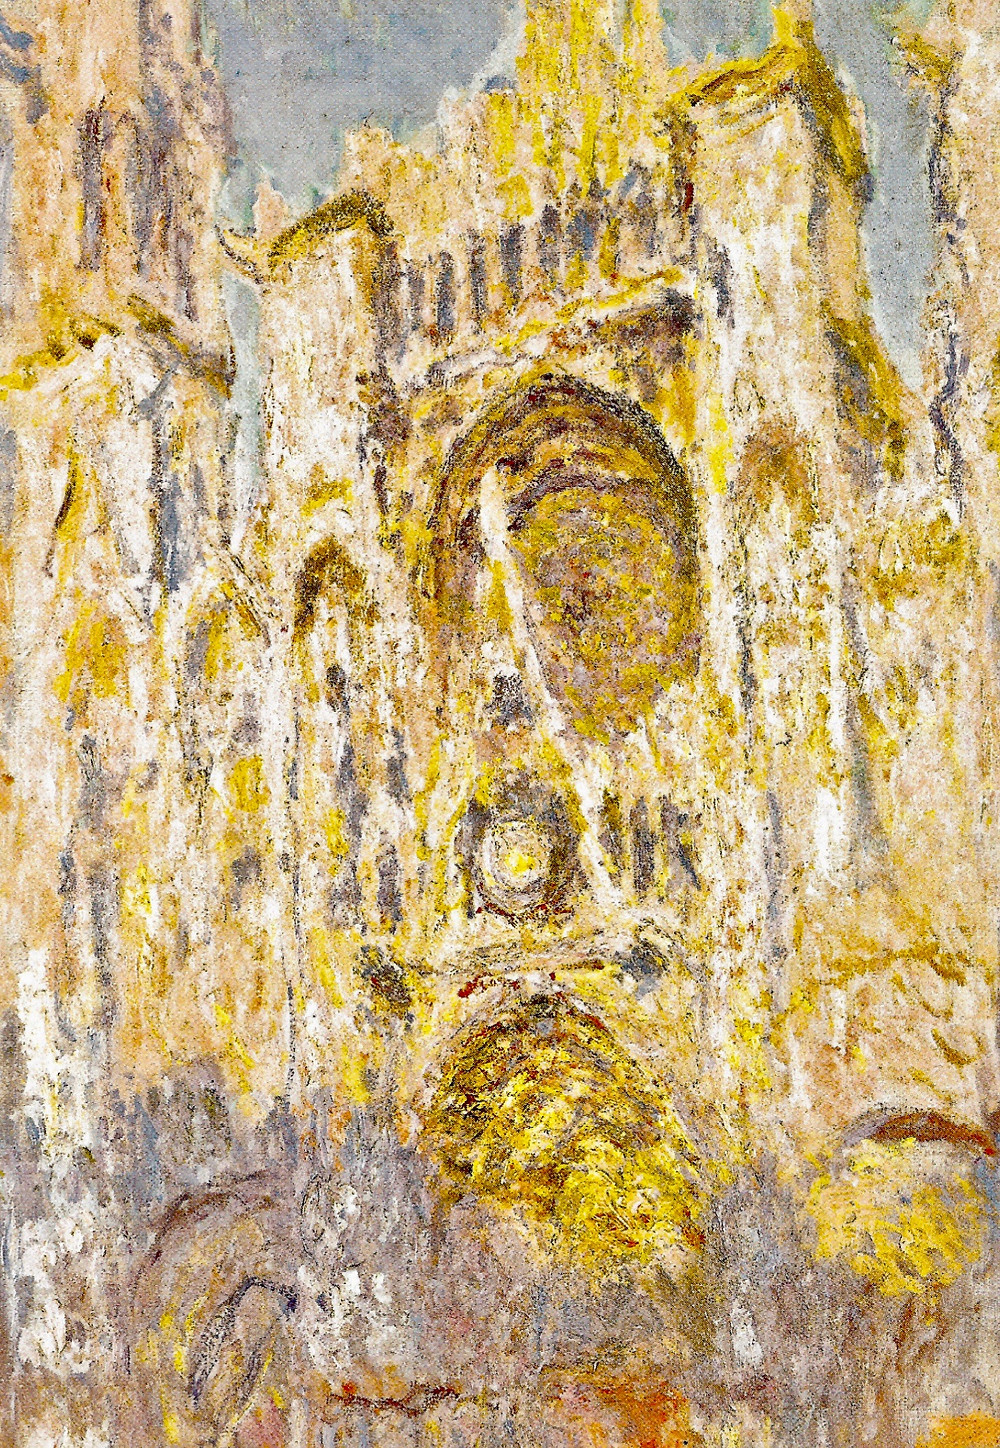 Monet, Rouen Cathedral at Sunset, 1892